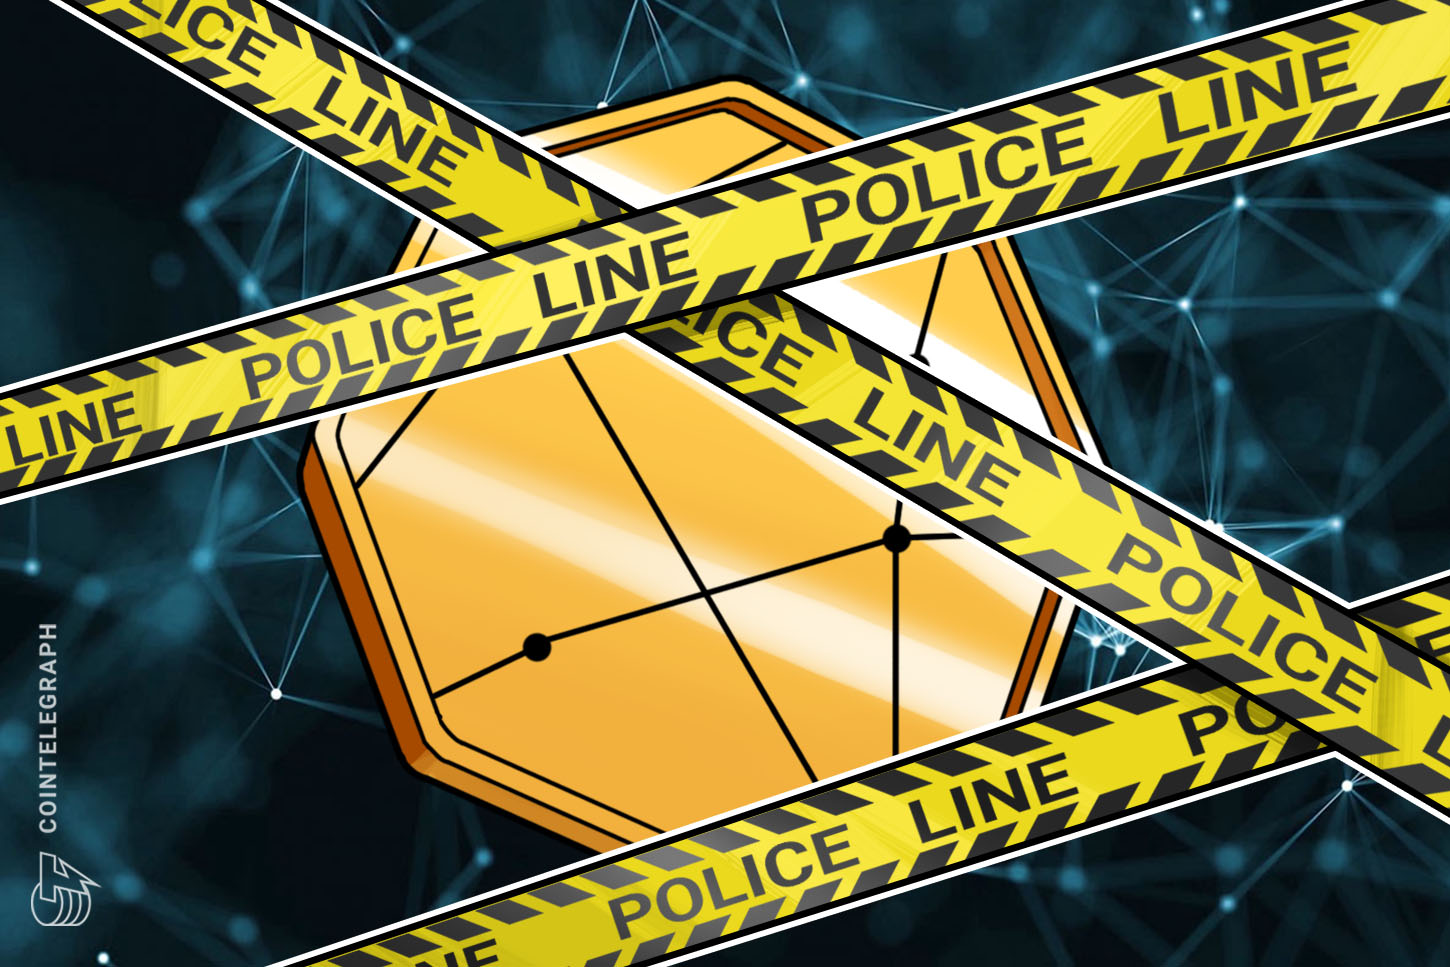 Turkish customs confiscate over 500 smuggled Bitcoin mining rigs